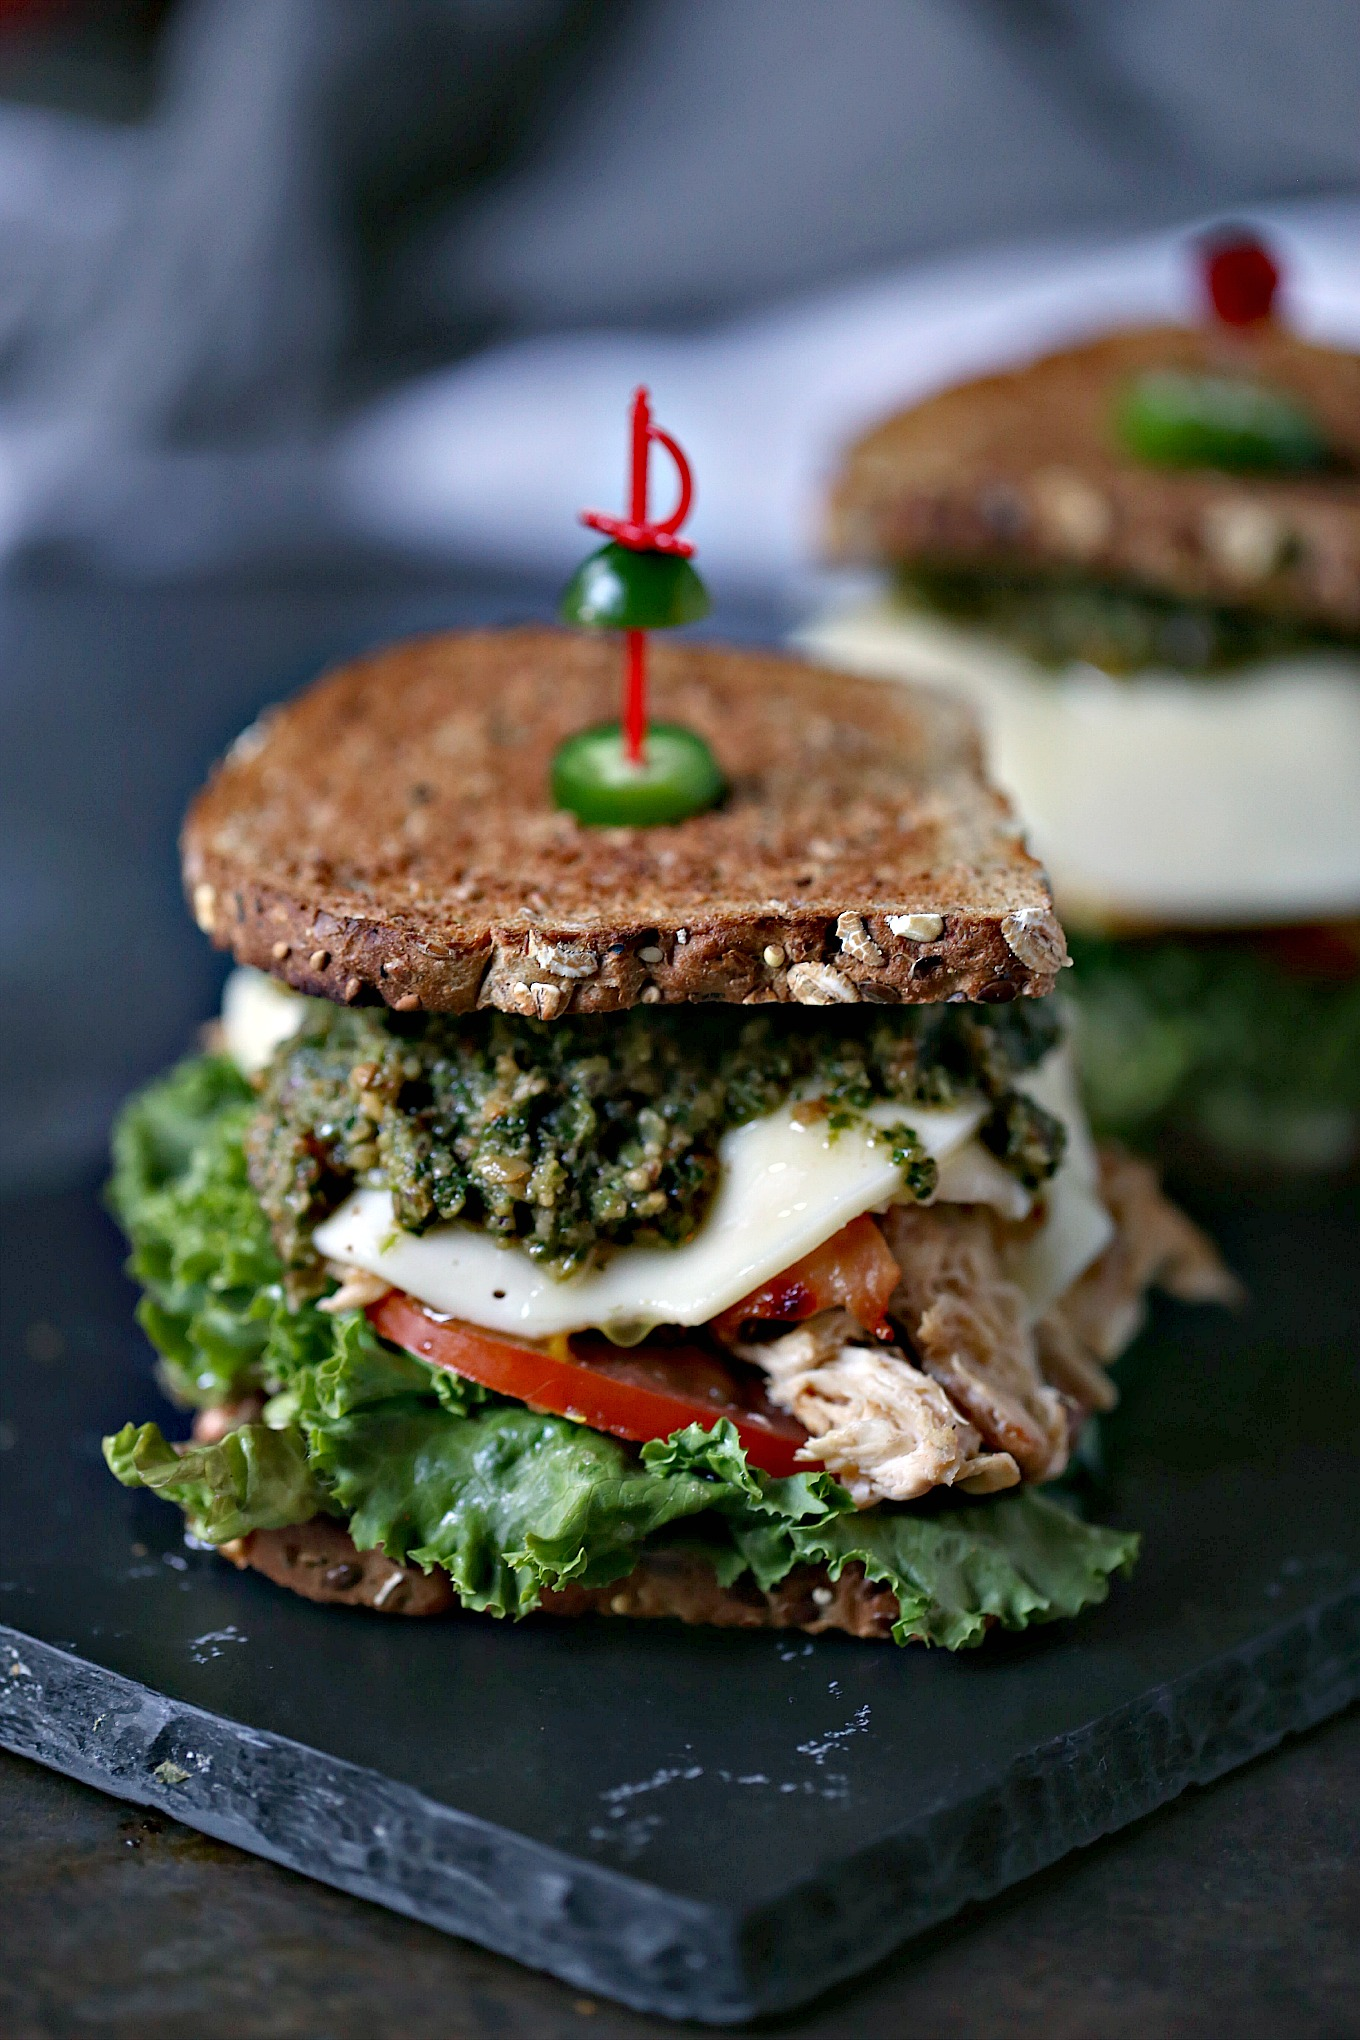 Grilled Chicken Sandwich Recipe | How To Make A Grilled ...  |Recipes Grilled Chicken Subs